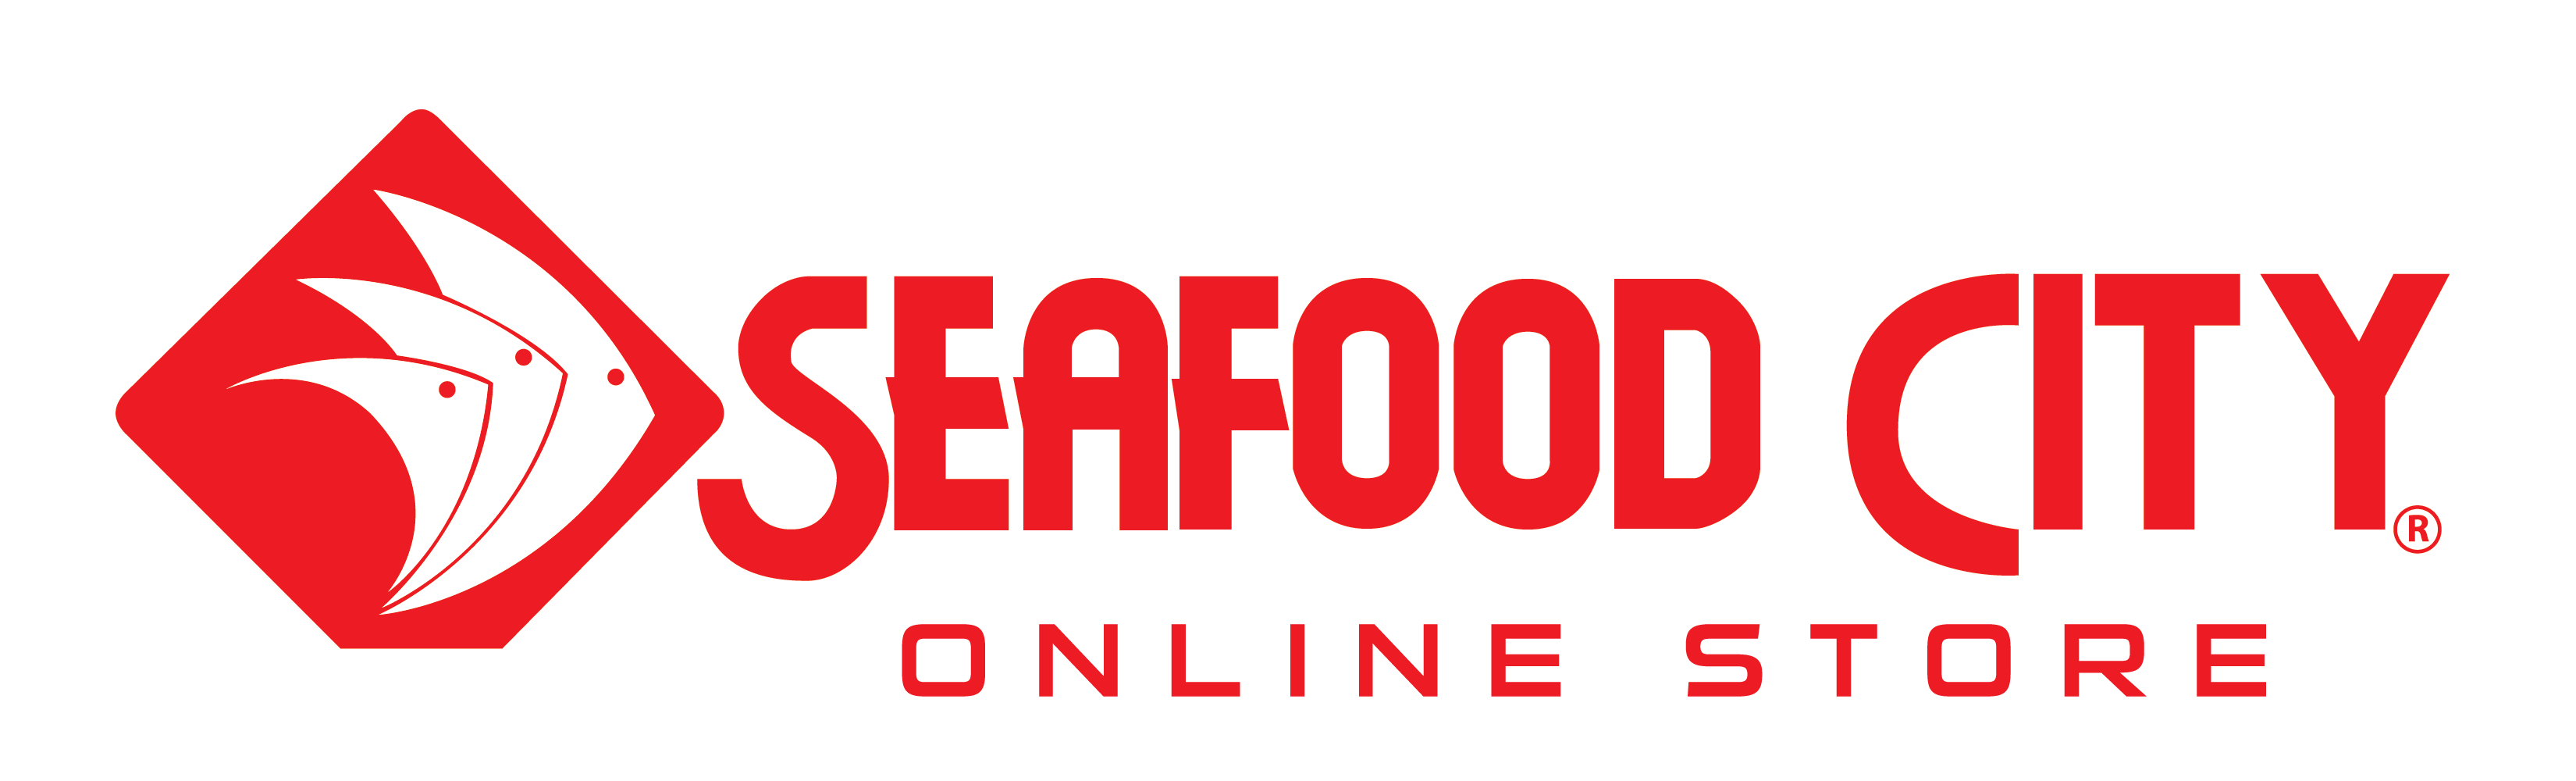 Seafood City Supermarket Waipahu